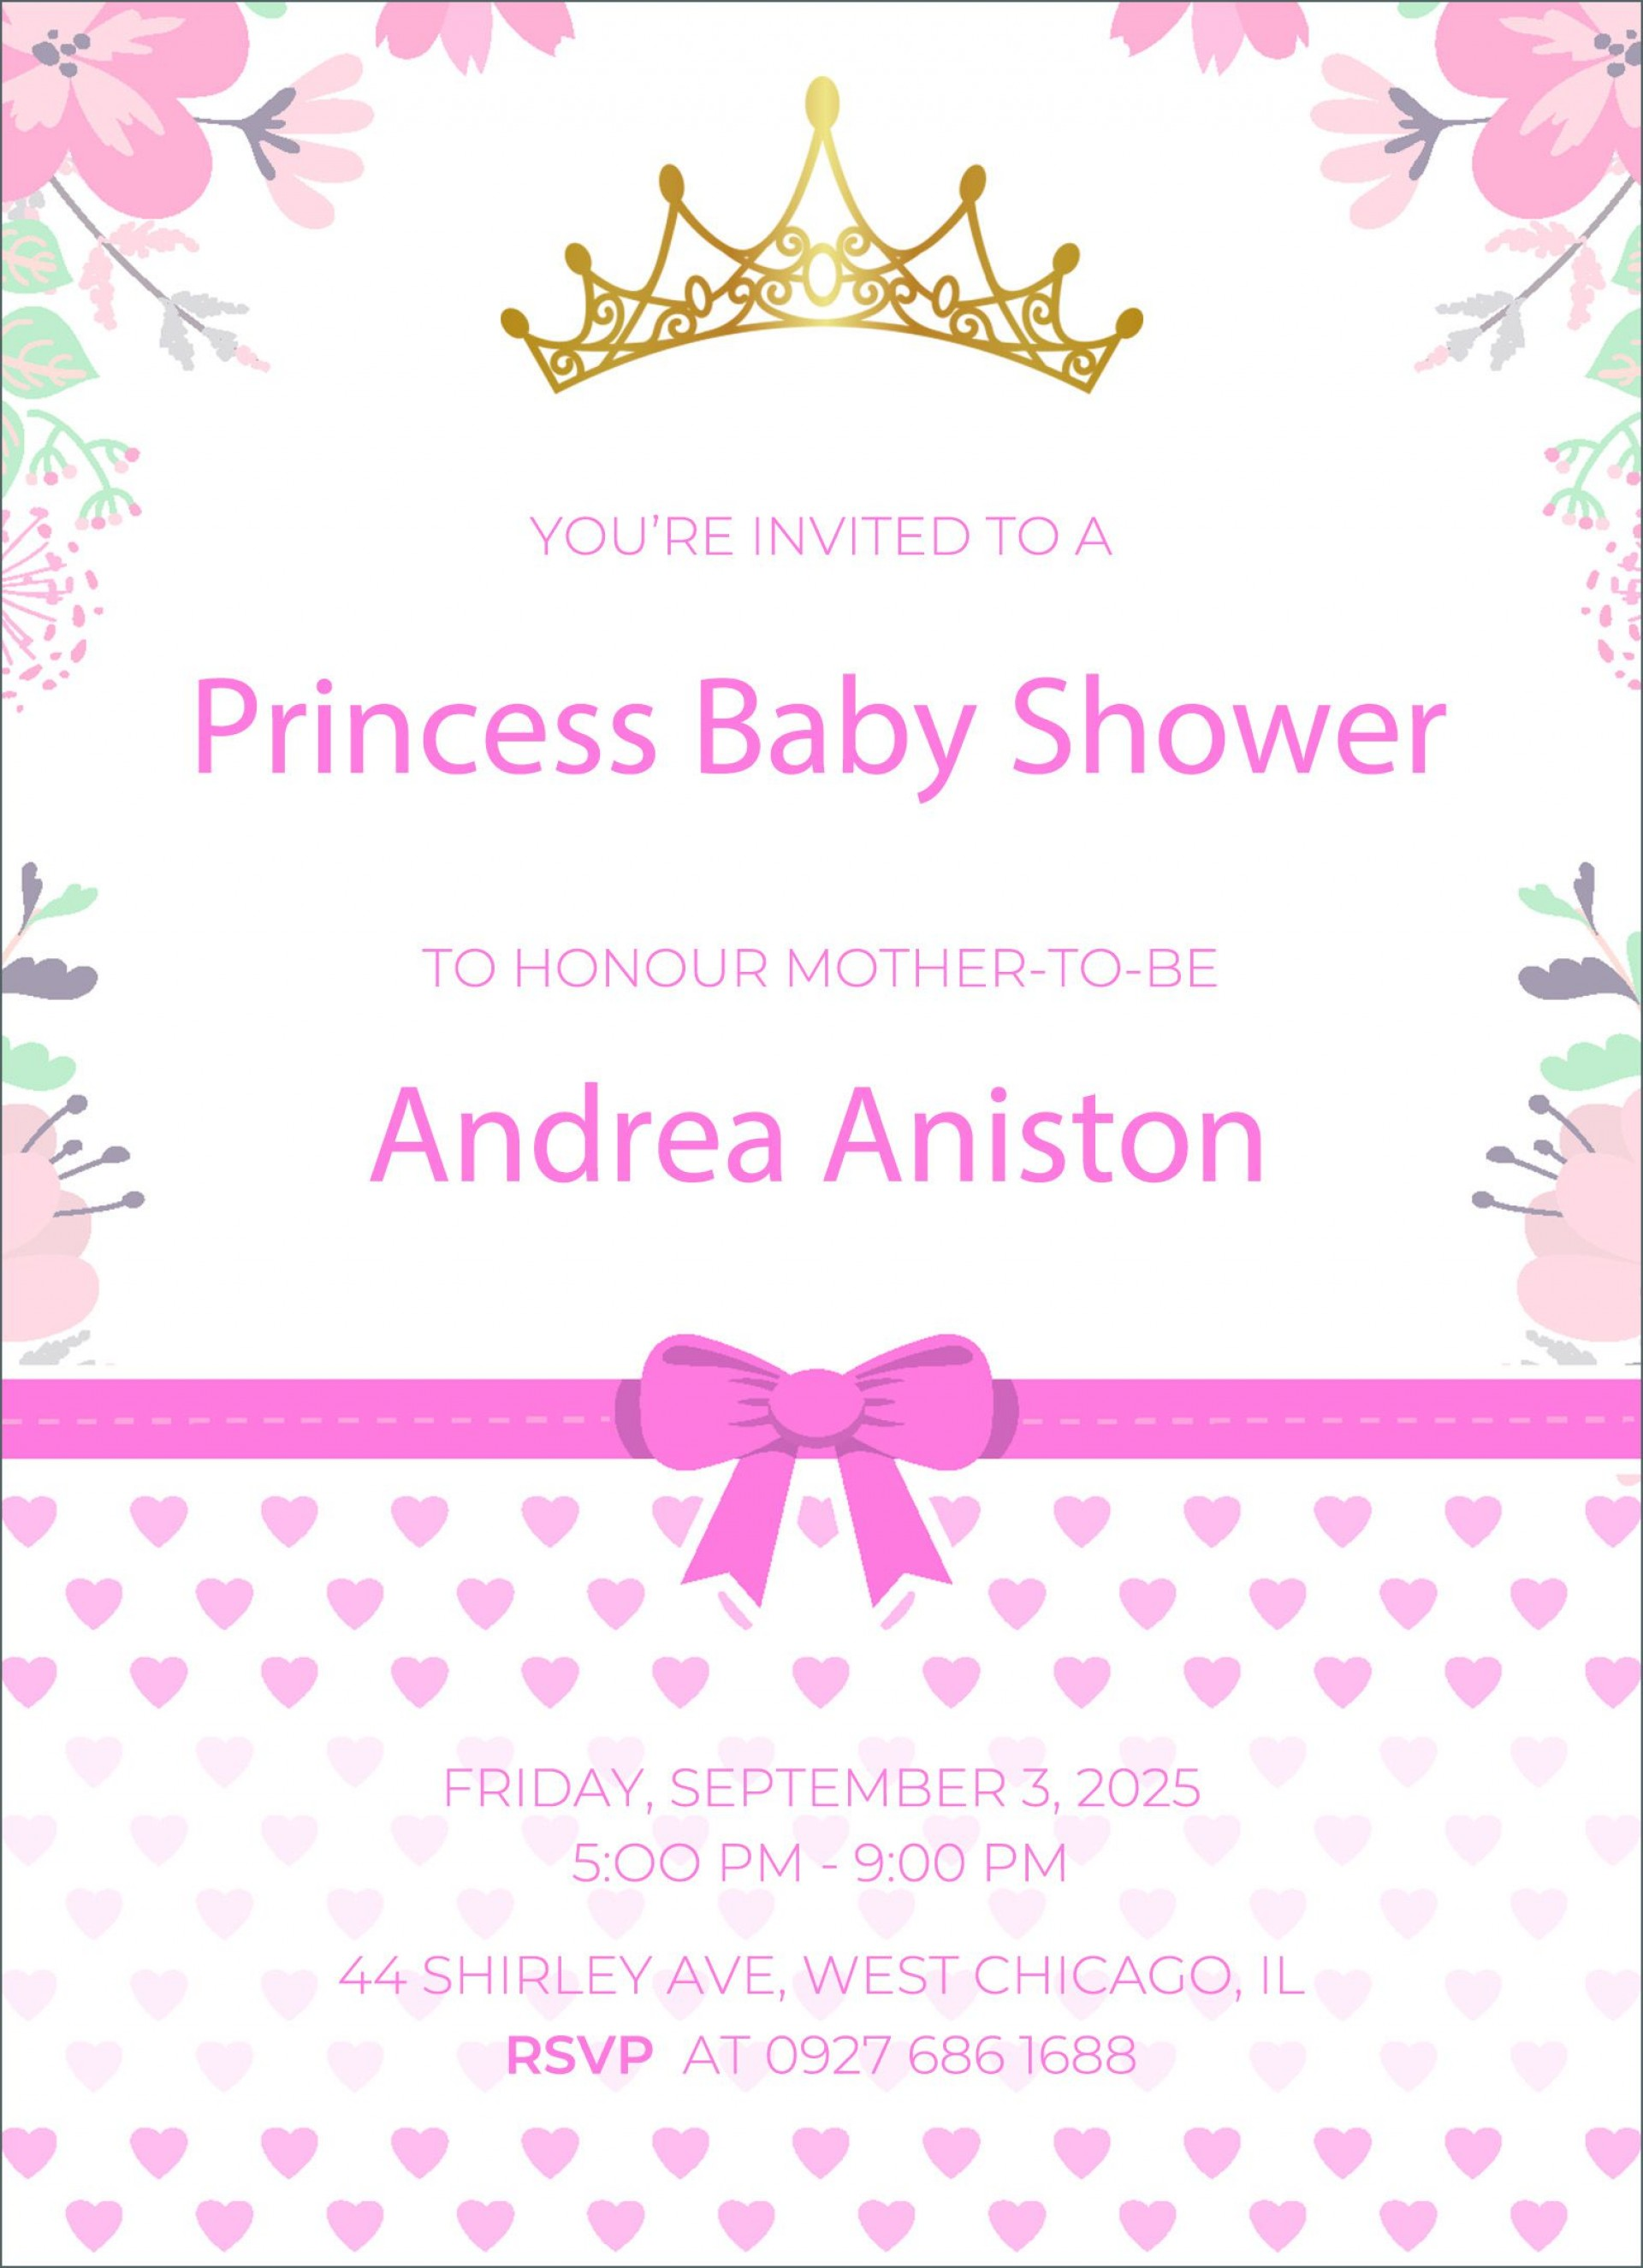 003 Amazing Baby Shower Invitation Template Word Image  Office Wording Sample Work Download1920